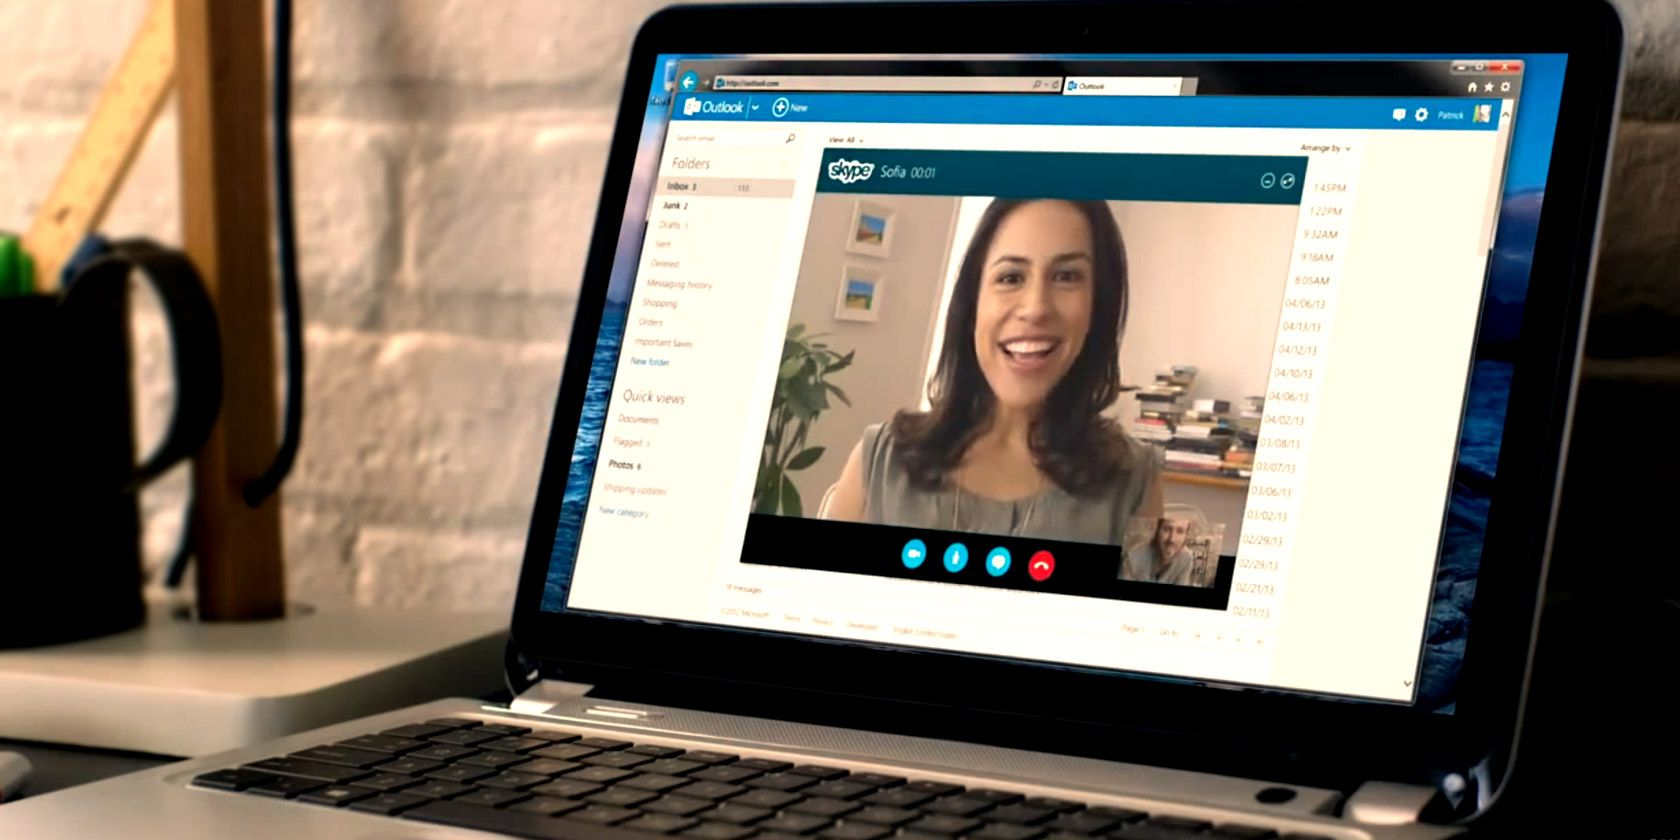 Skype Video Not Working? How to Test and Troubleshoot Your Camera